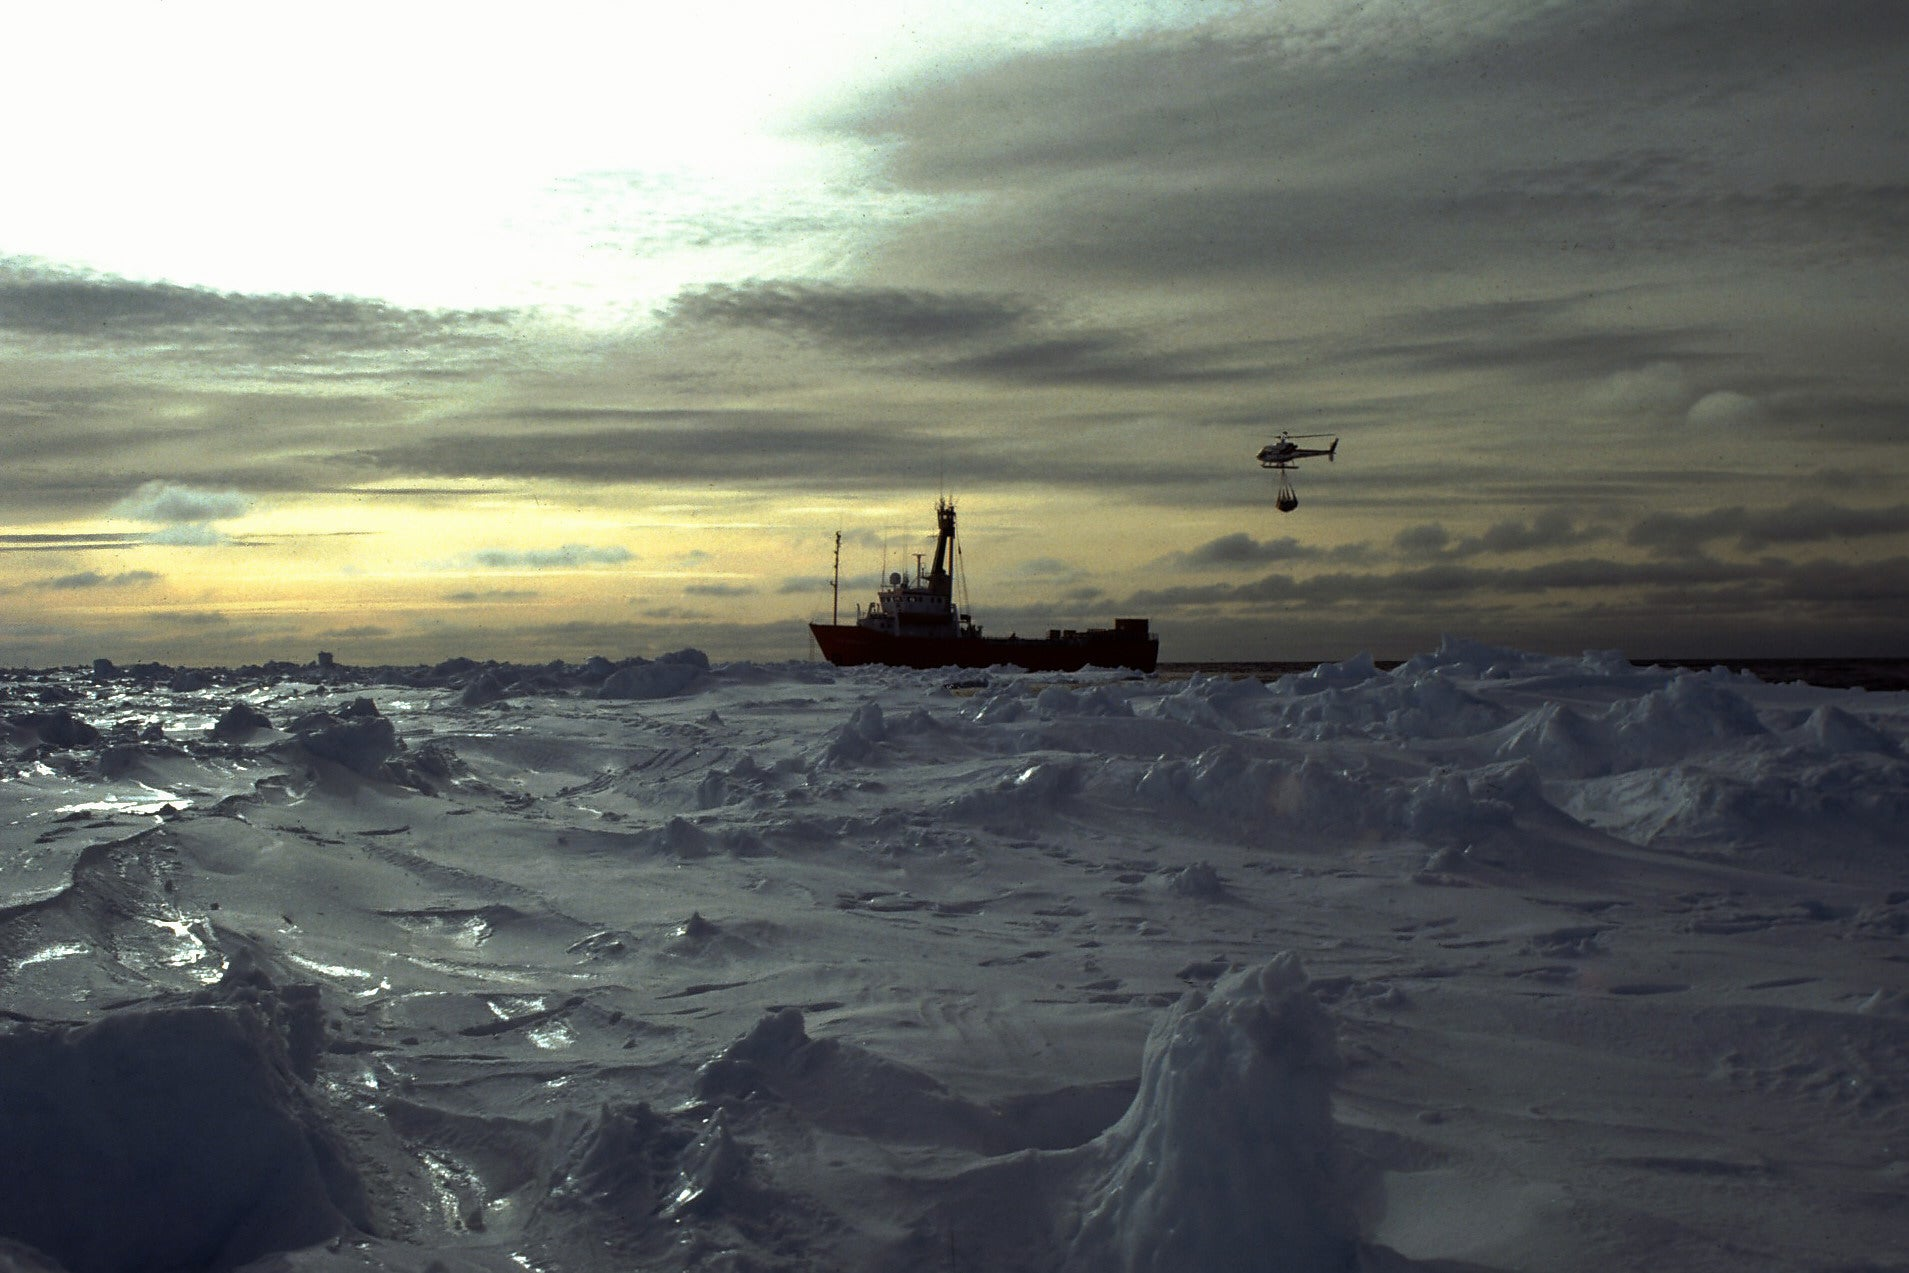 Melting Glaciers Are Increasing Extent Of Sea Ice In Antarctica, Says Counterintuitive Study